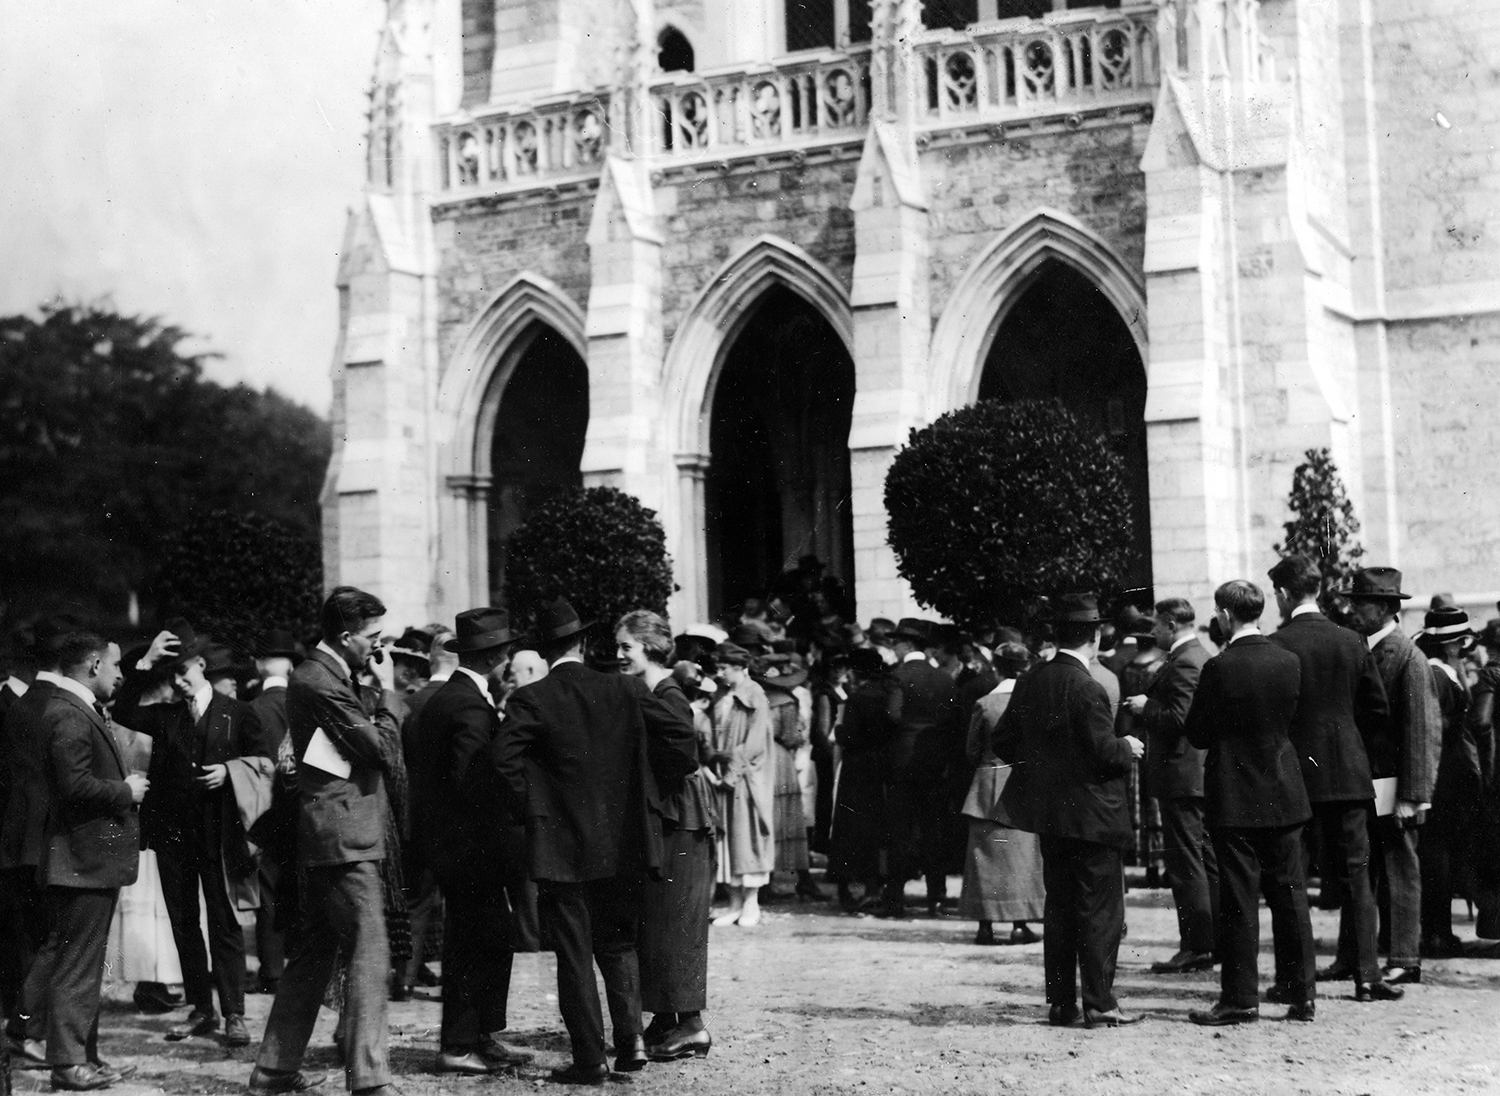 Figure 10: People mingling outside the west door of the Cathedral on October 5, 1919.